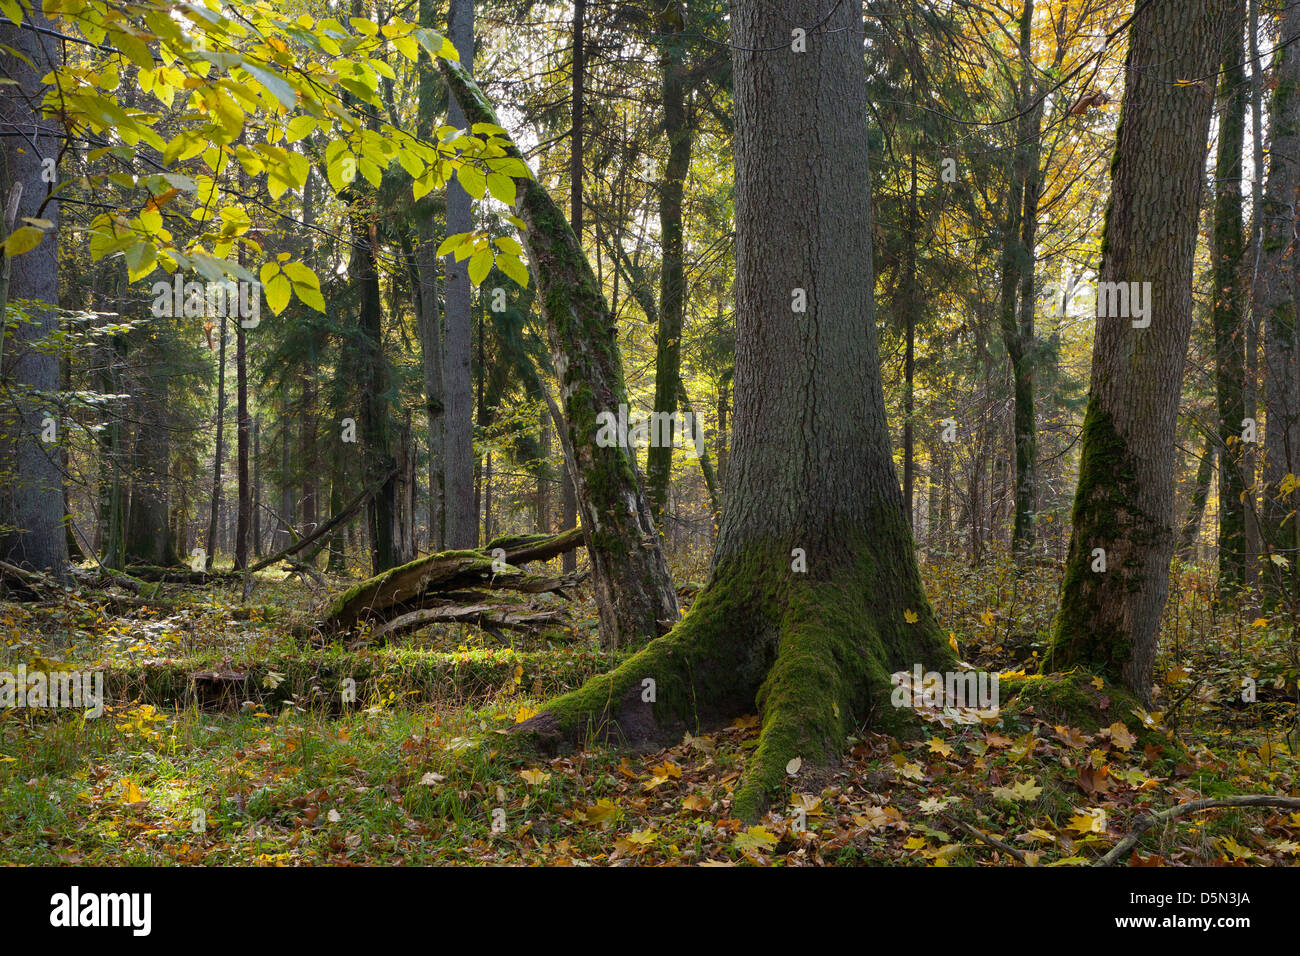 Old moss wrapped spruce tree in foreground of autumnal stand of Bialowieza Forest - Stock Image